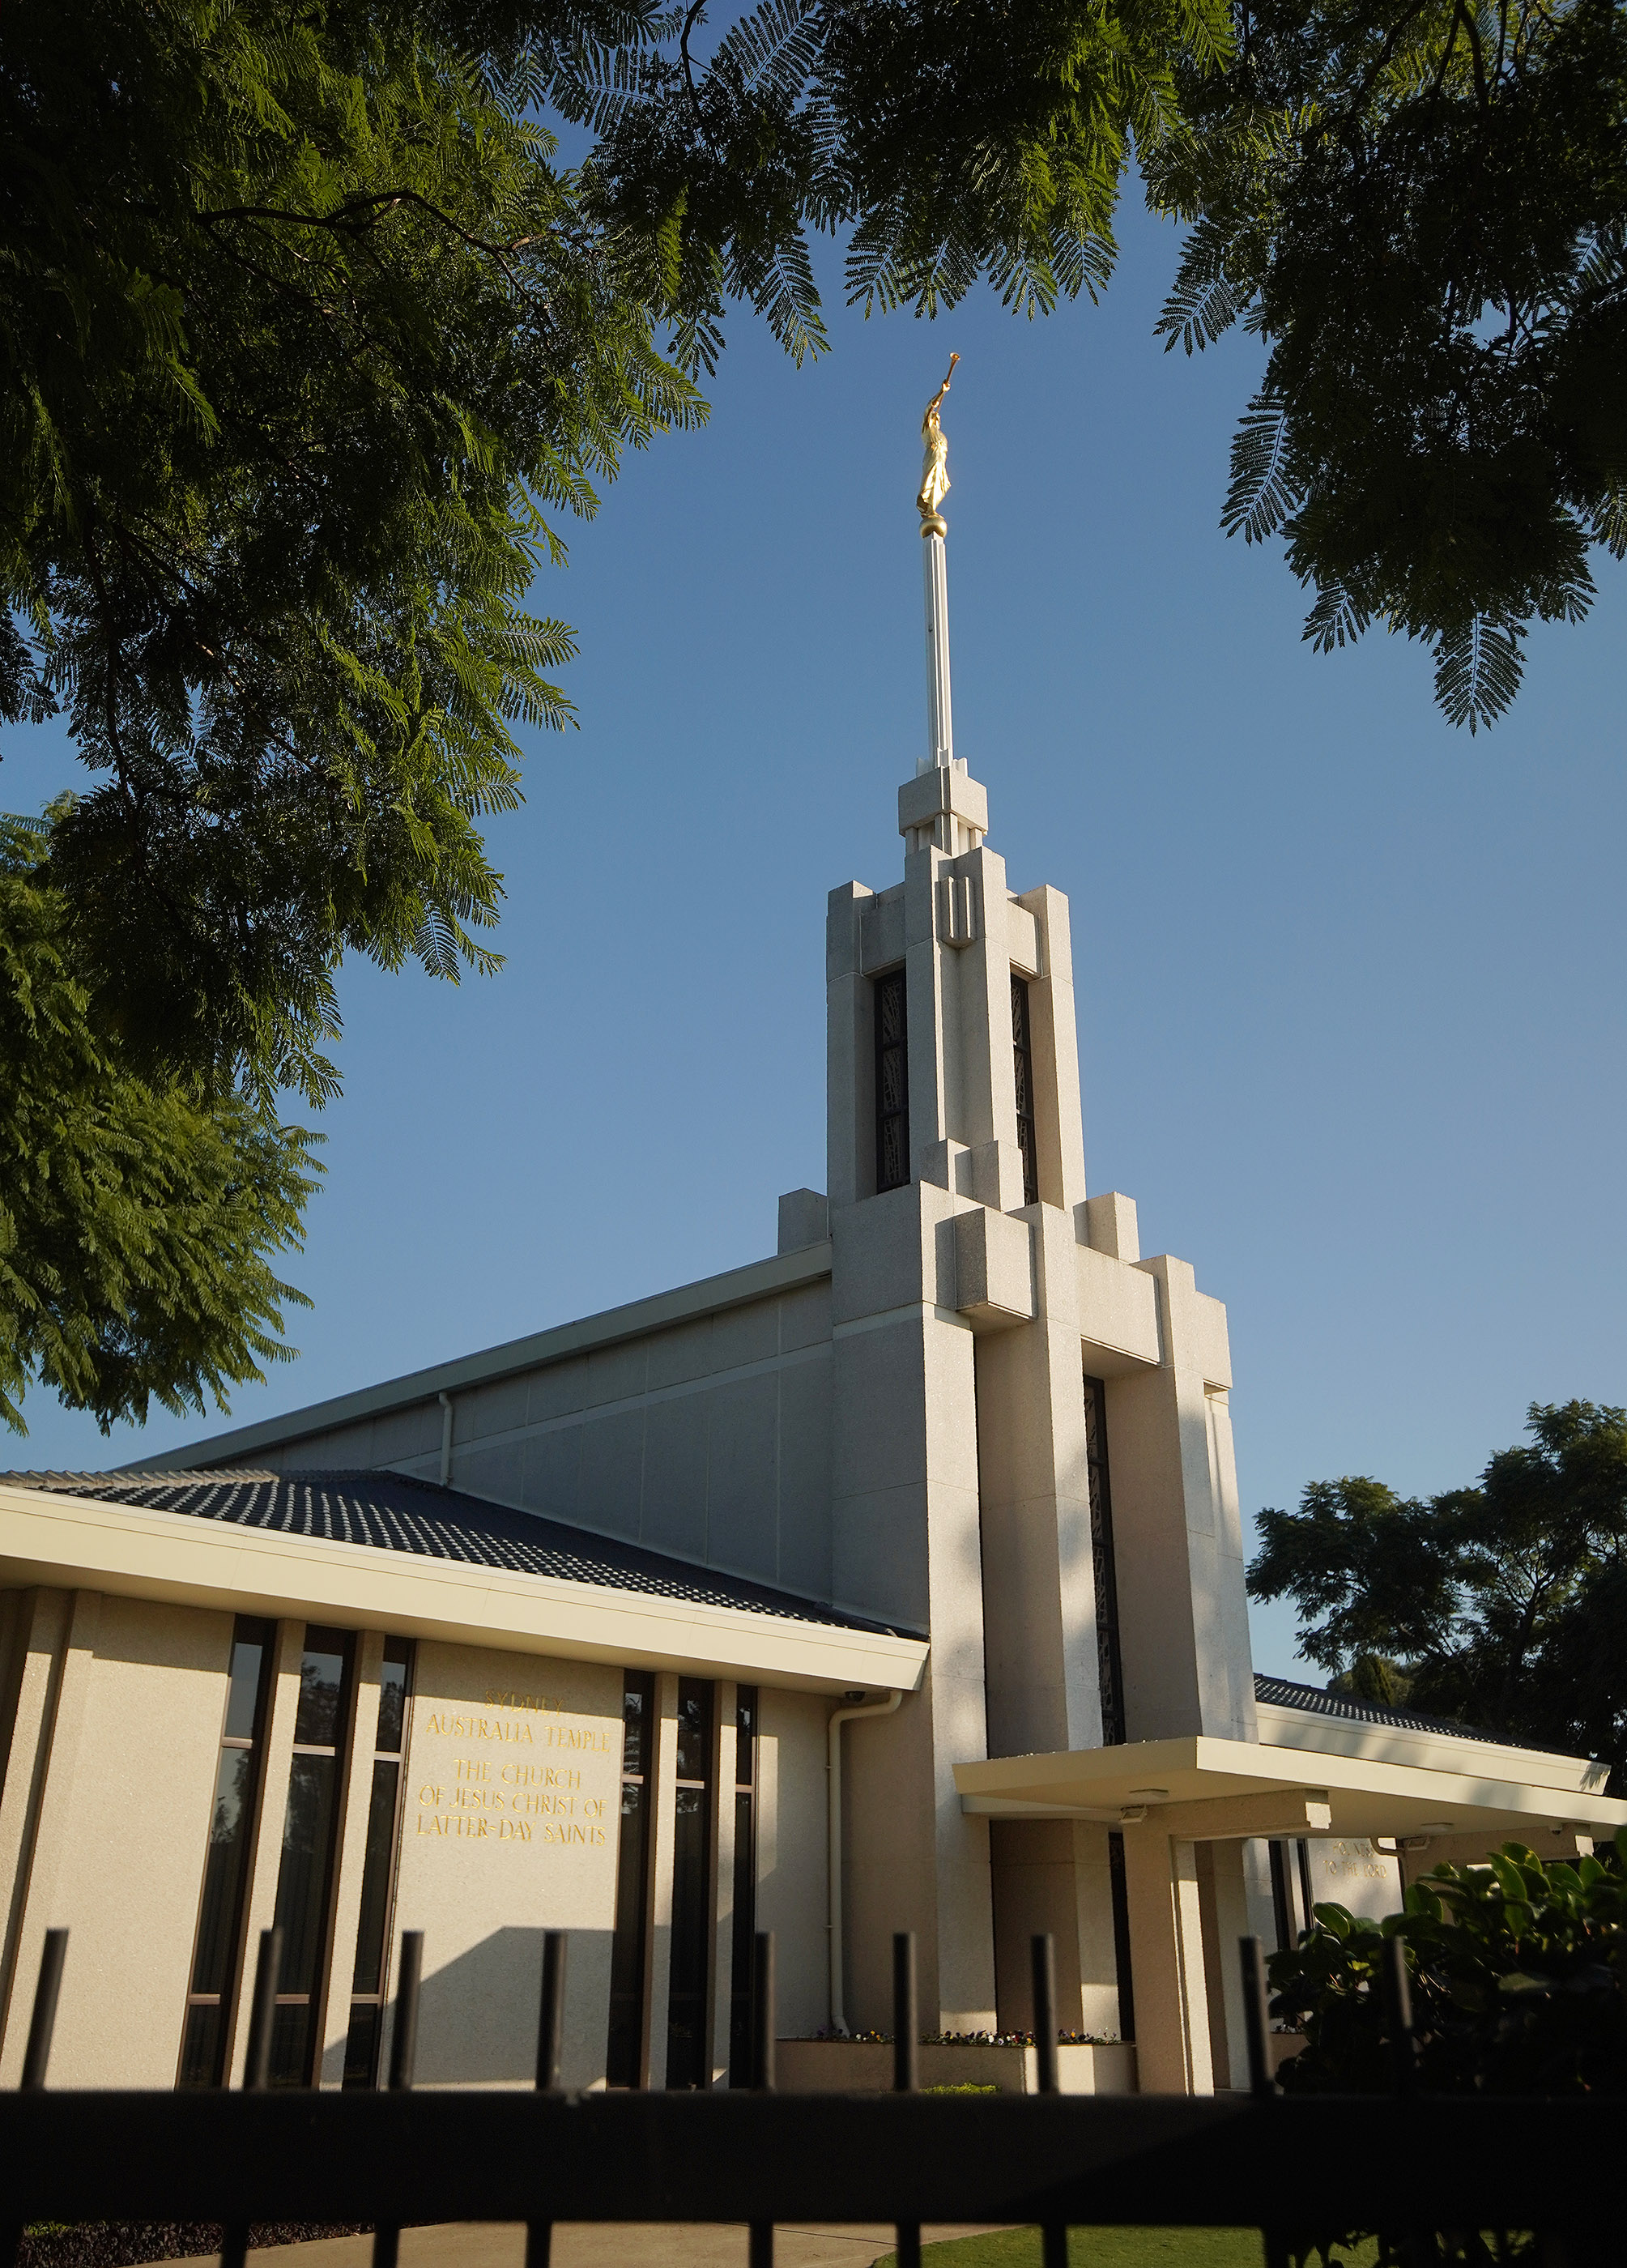 The Sydney Australia Temple on May 18, 2019, in Sydney, Australia.